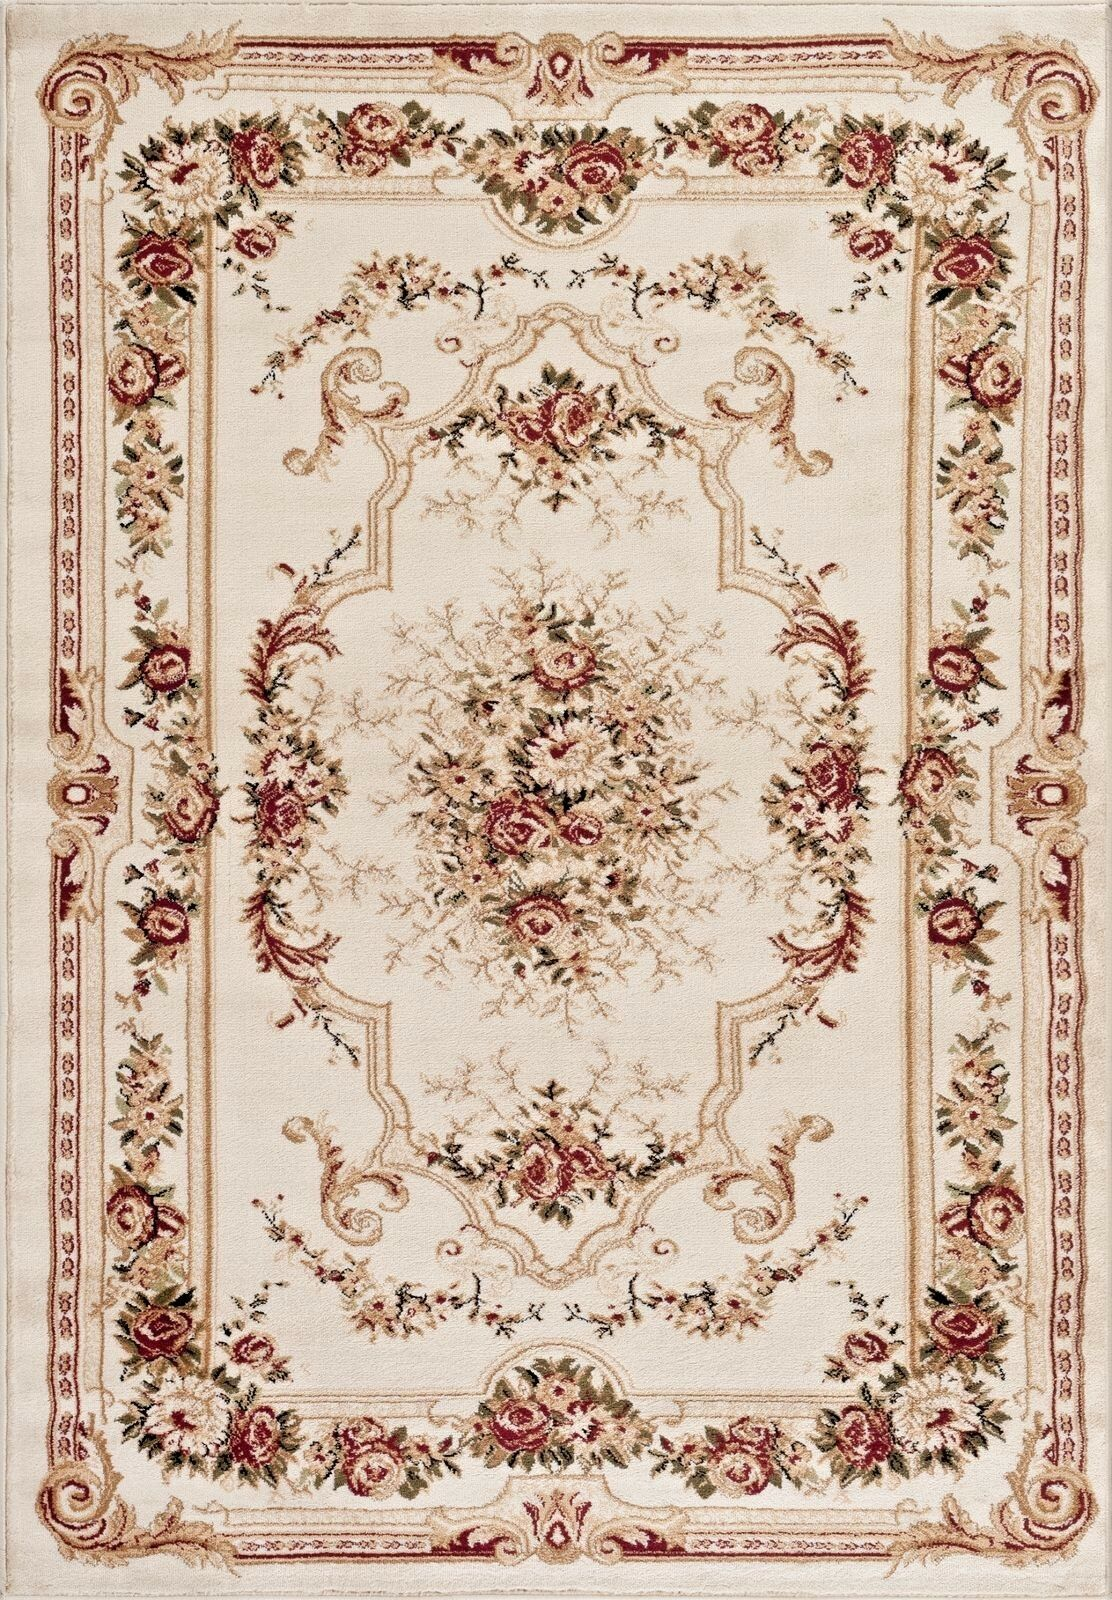 Rugs area rugs carpet flooring persian area rug oriental for Where can i buy area rugs